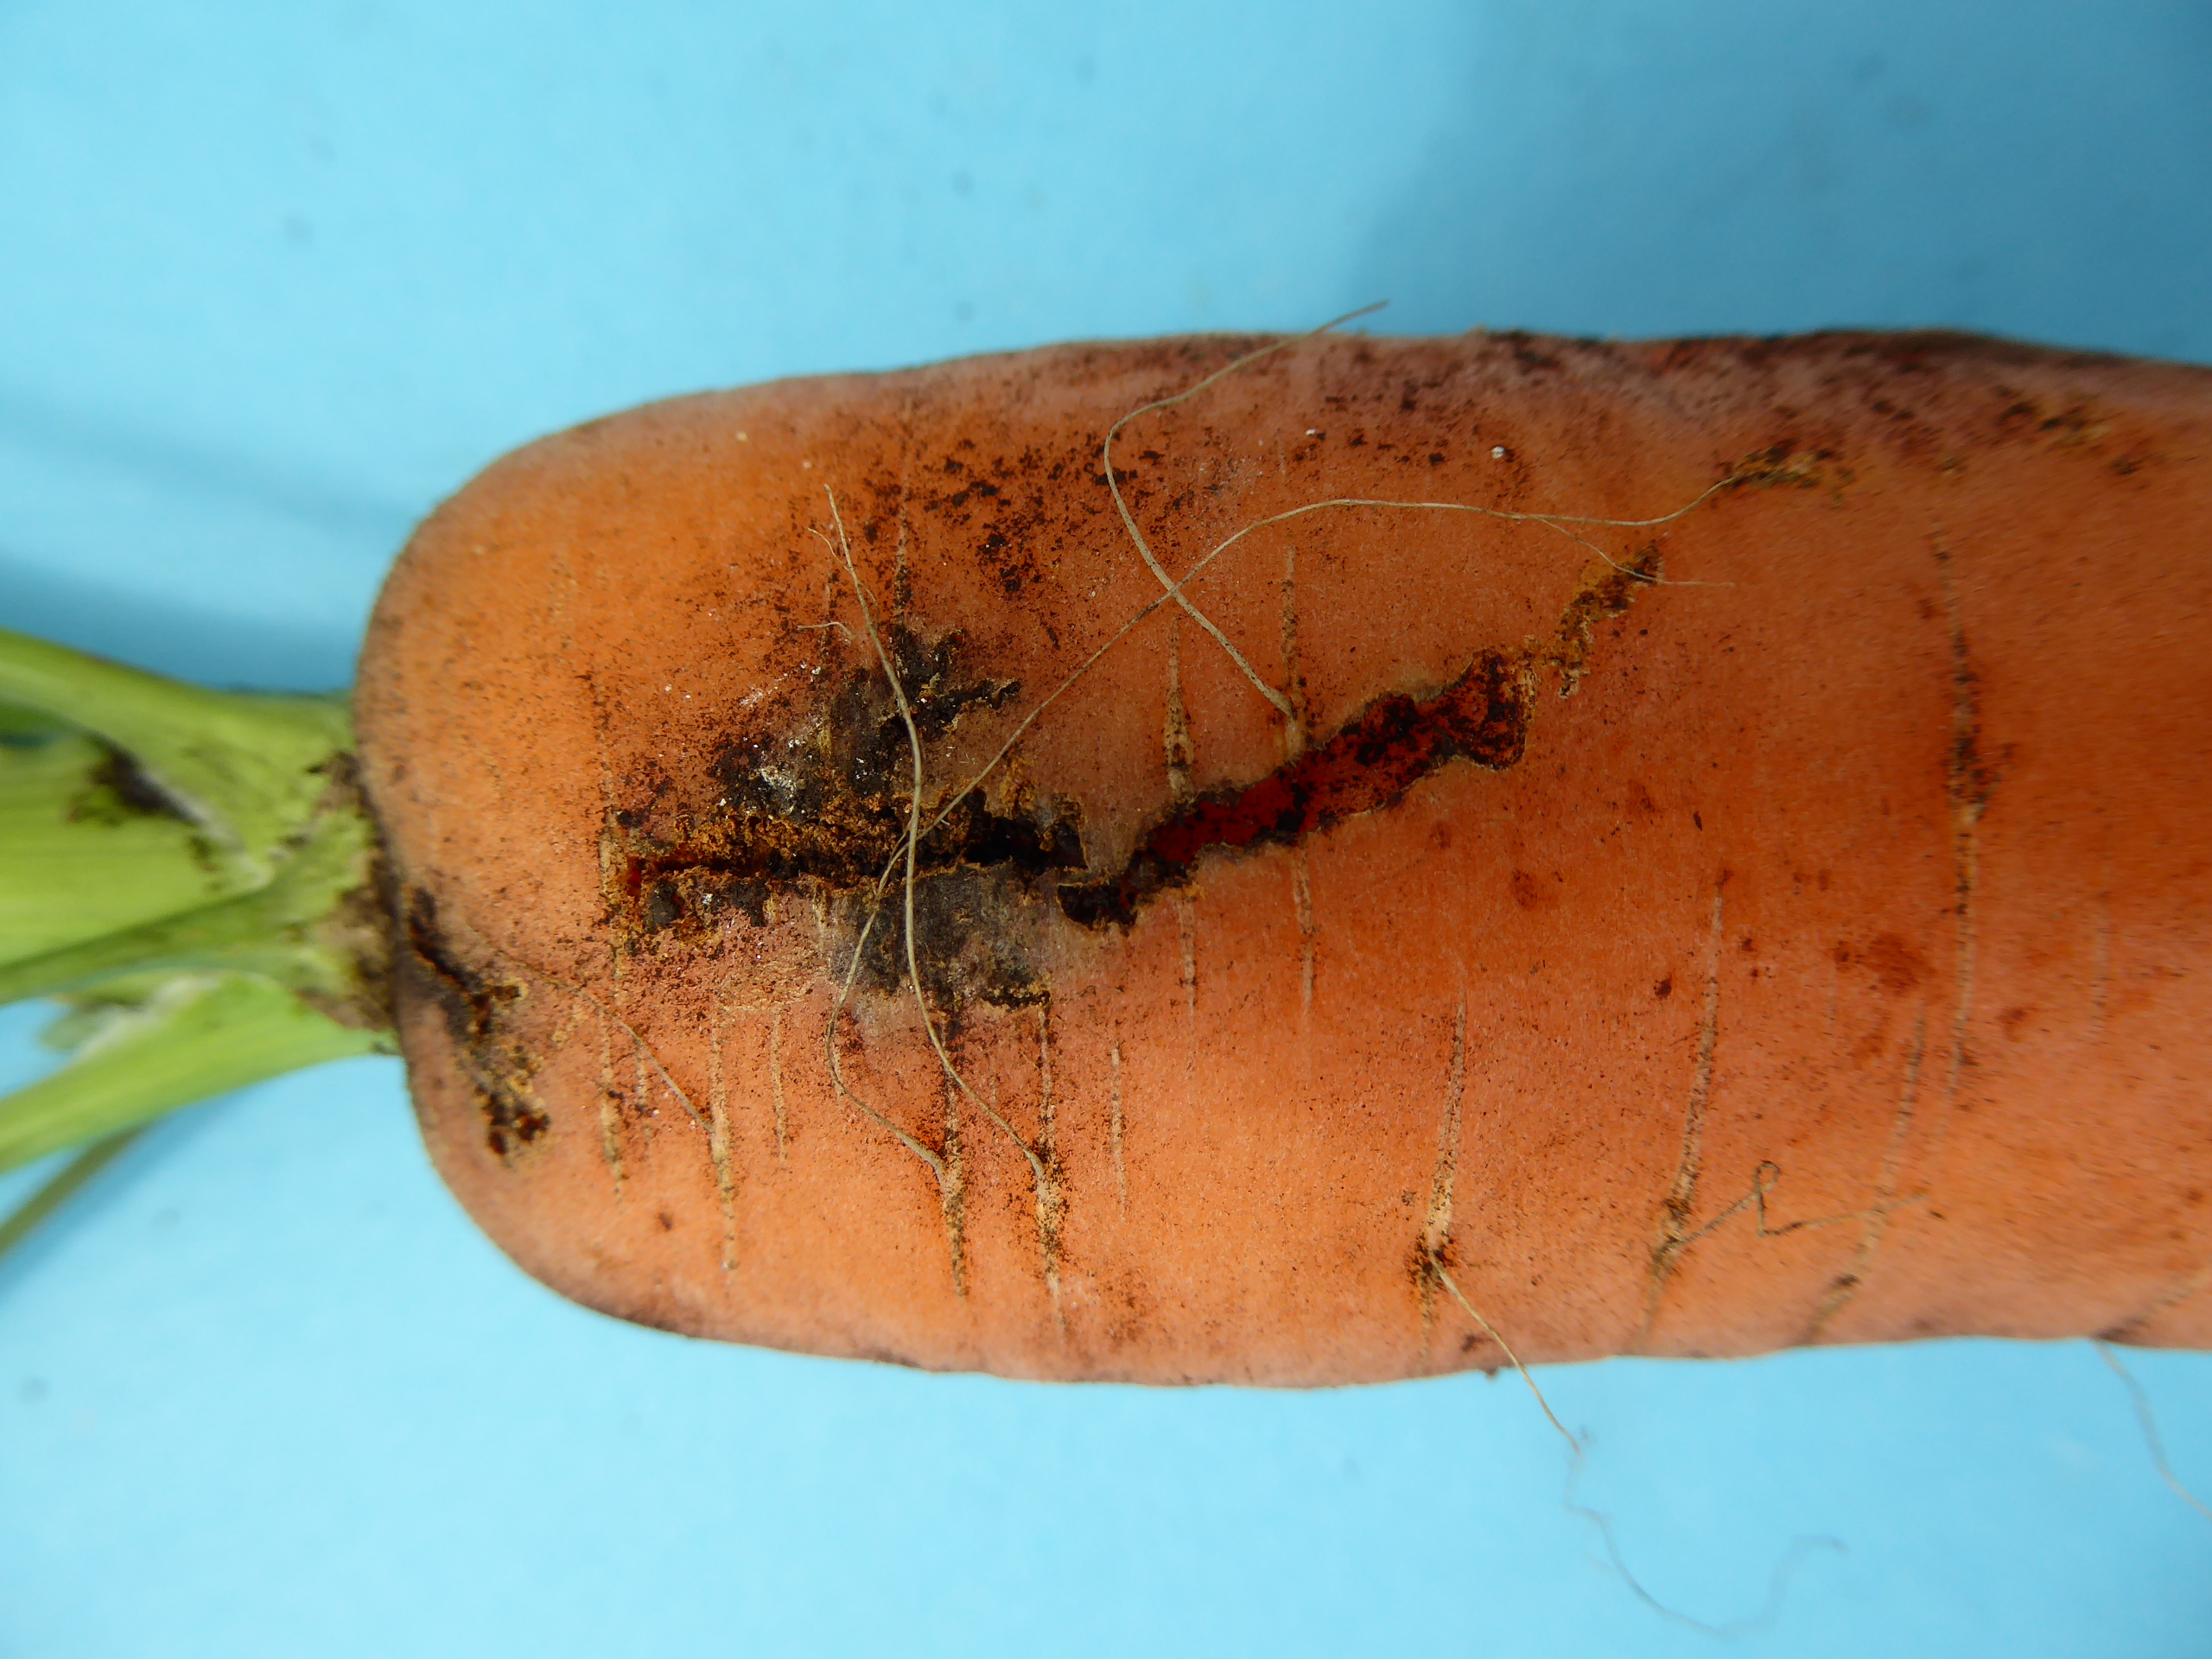 Carrot weevil damage